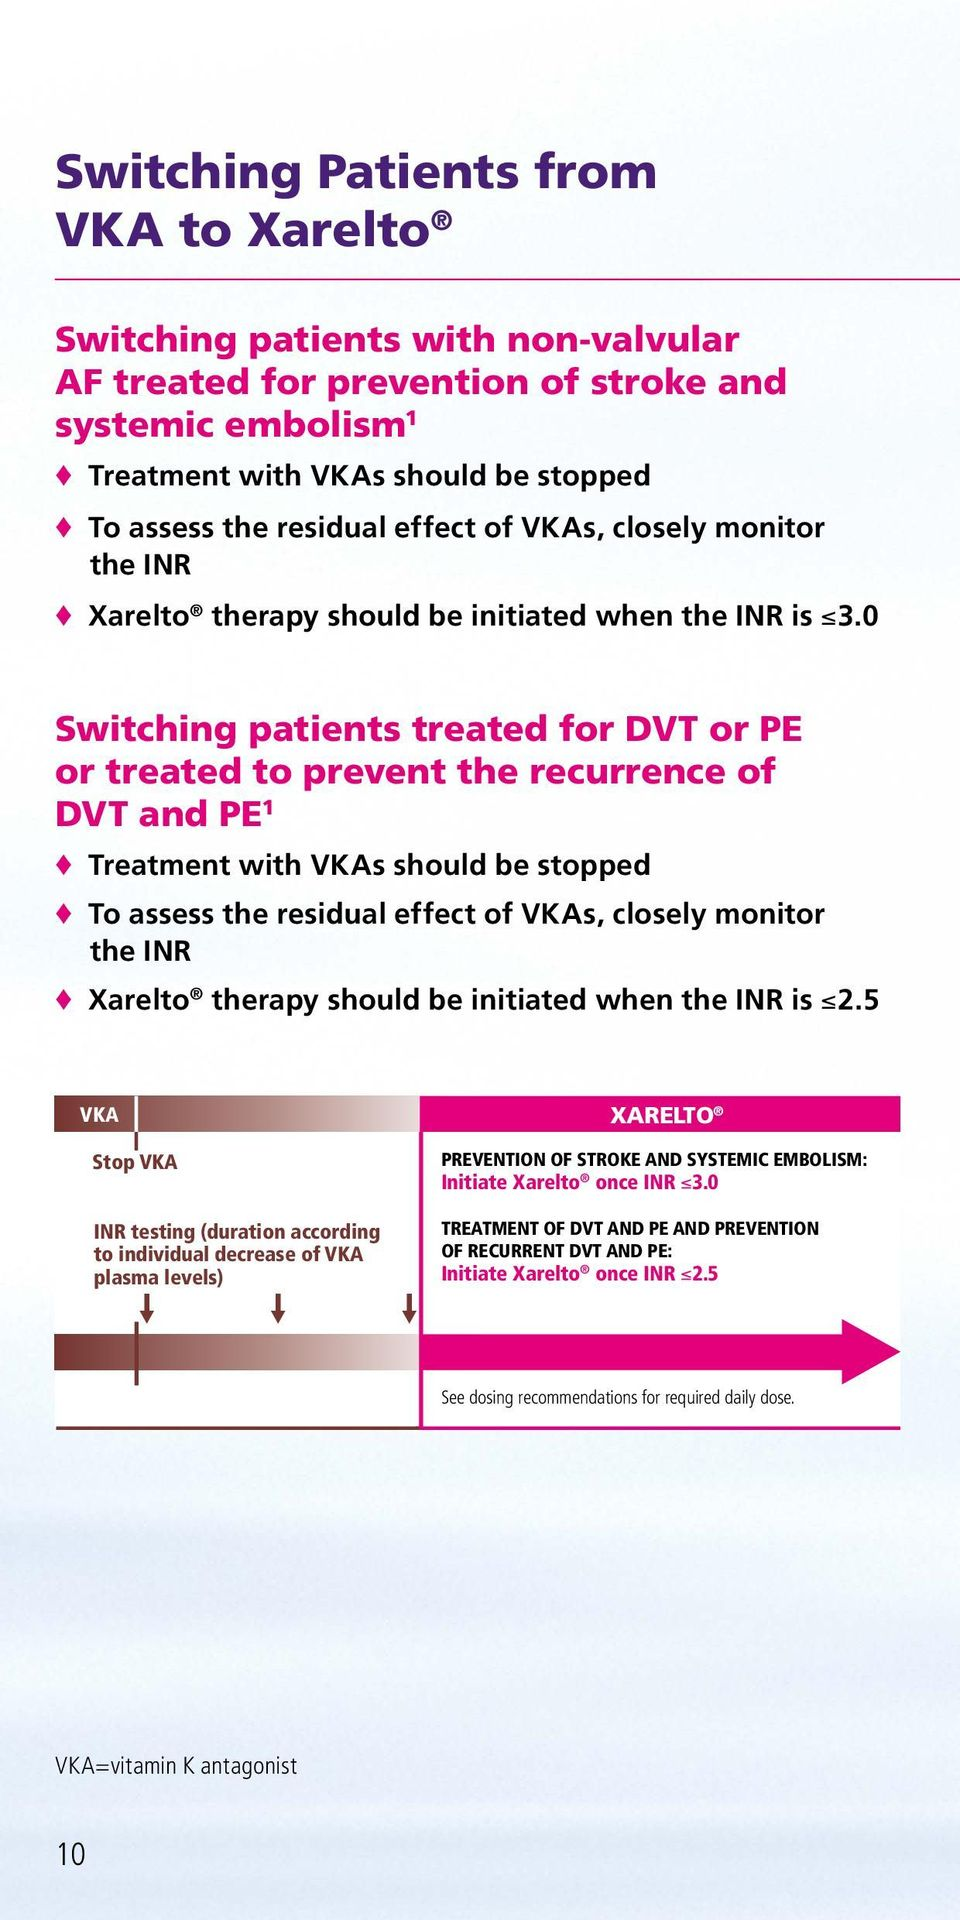 0 Switching patients treated for DVT or PE or treated to prevent the recurrence of DVT and PE 1 Treatment with VKAs should be stopped To assess the residual effect of VKAs, closely monitor the INR